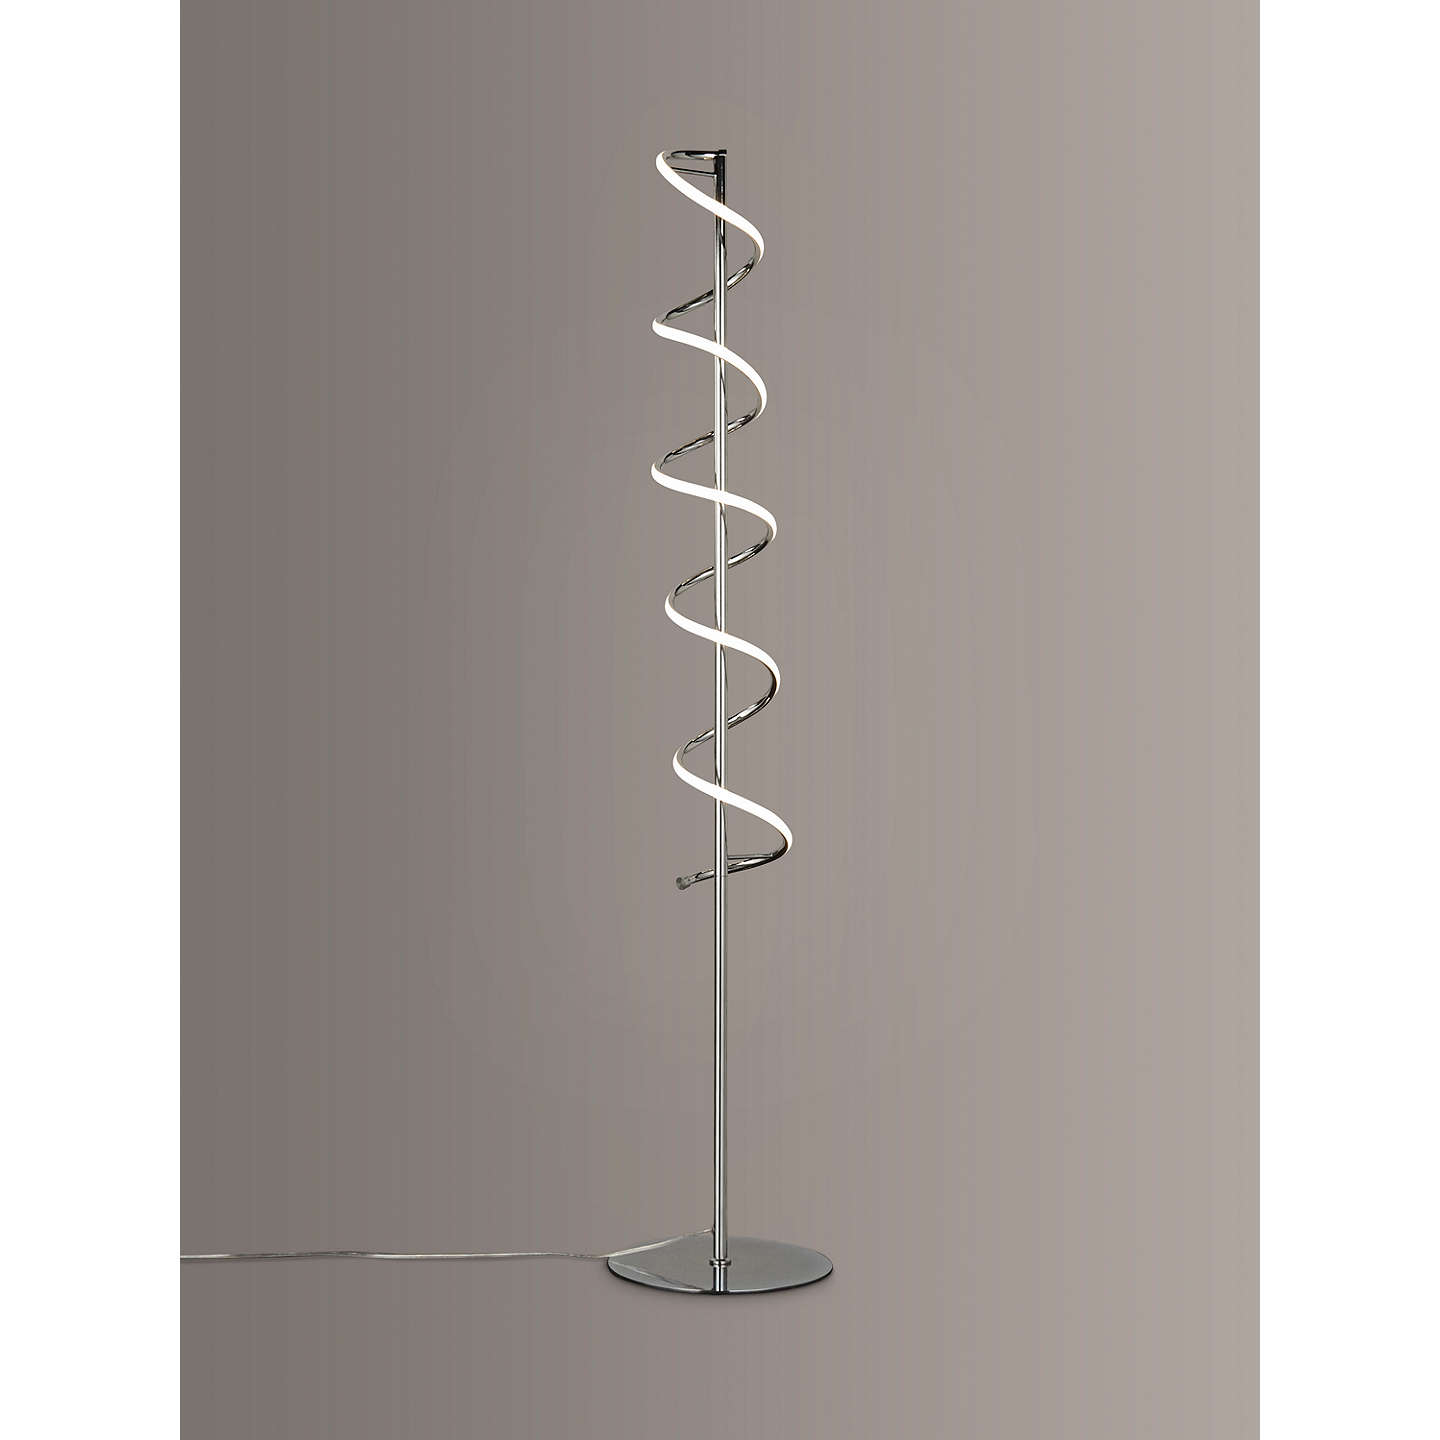 John lewis zena led twist floor lamp polished chrome at john lewis buyjohn lewis zena led twist floor lamp polished chrome online at johnlewis mozeypictures Choice Image